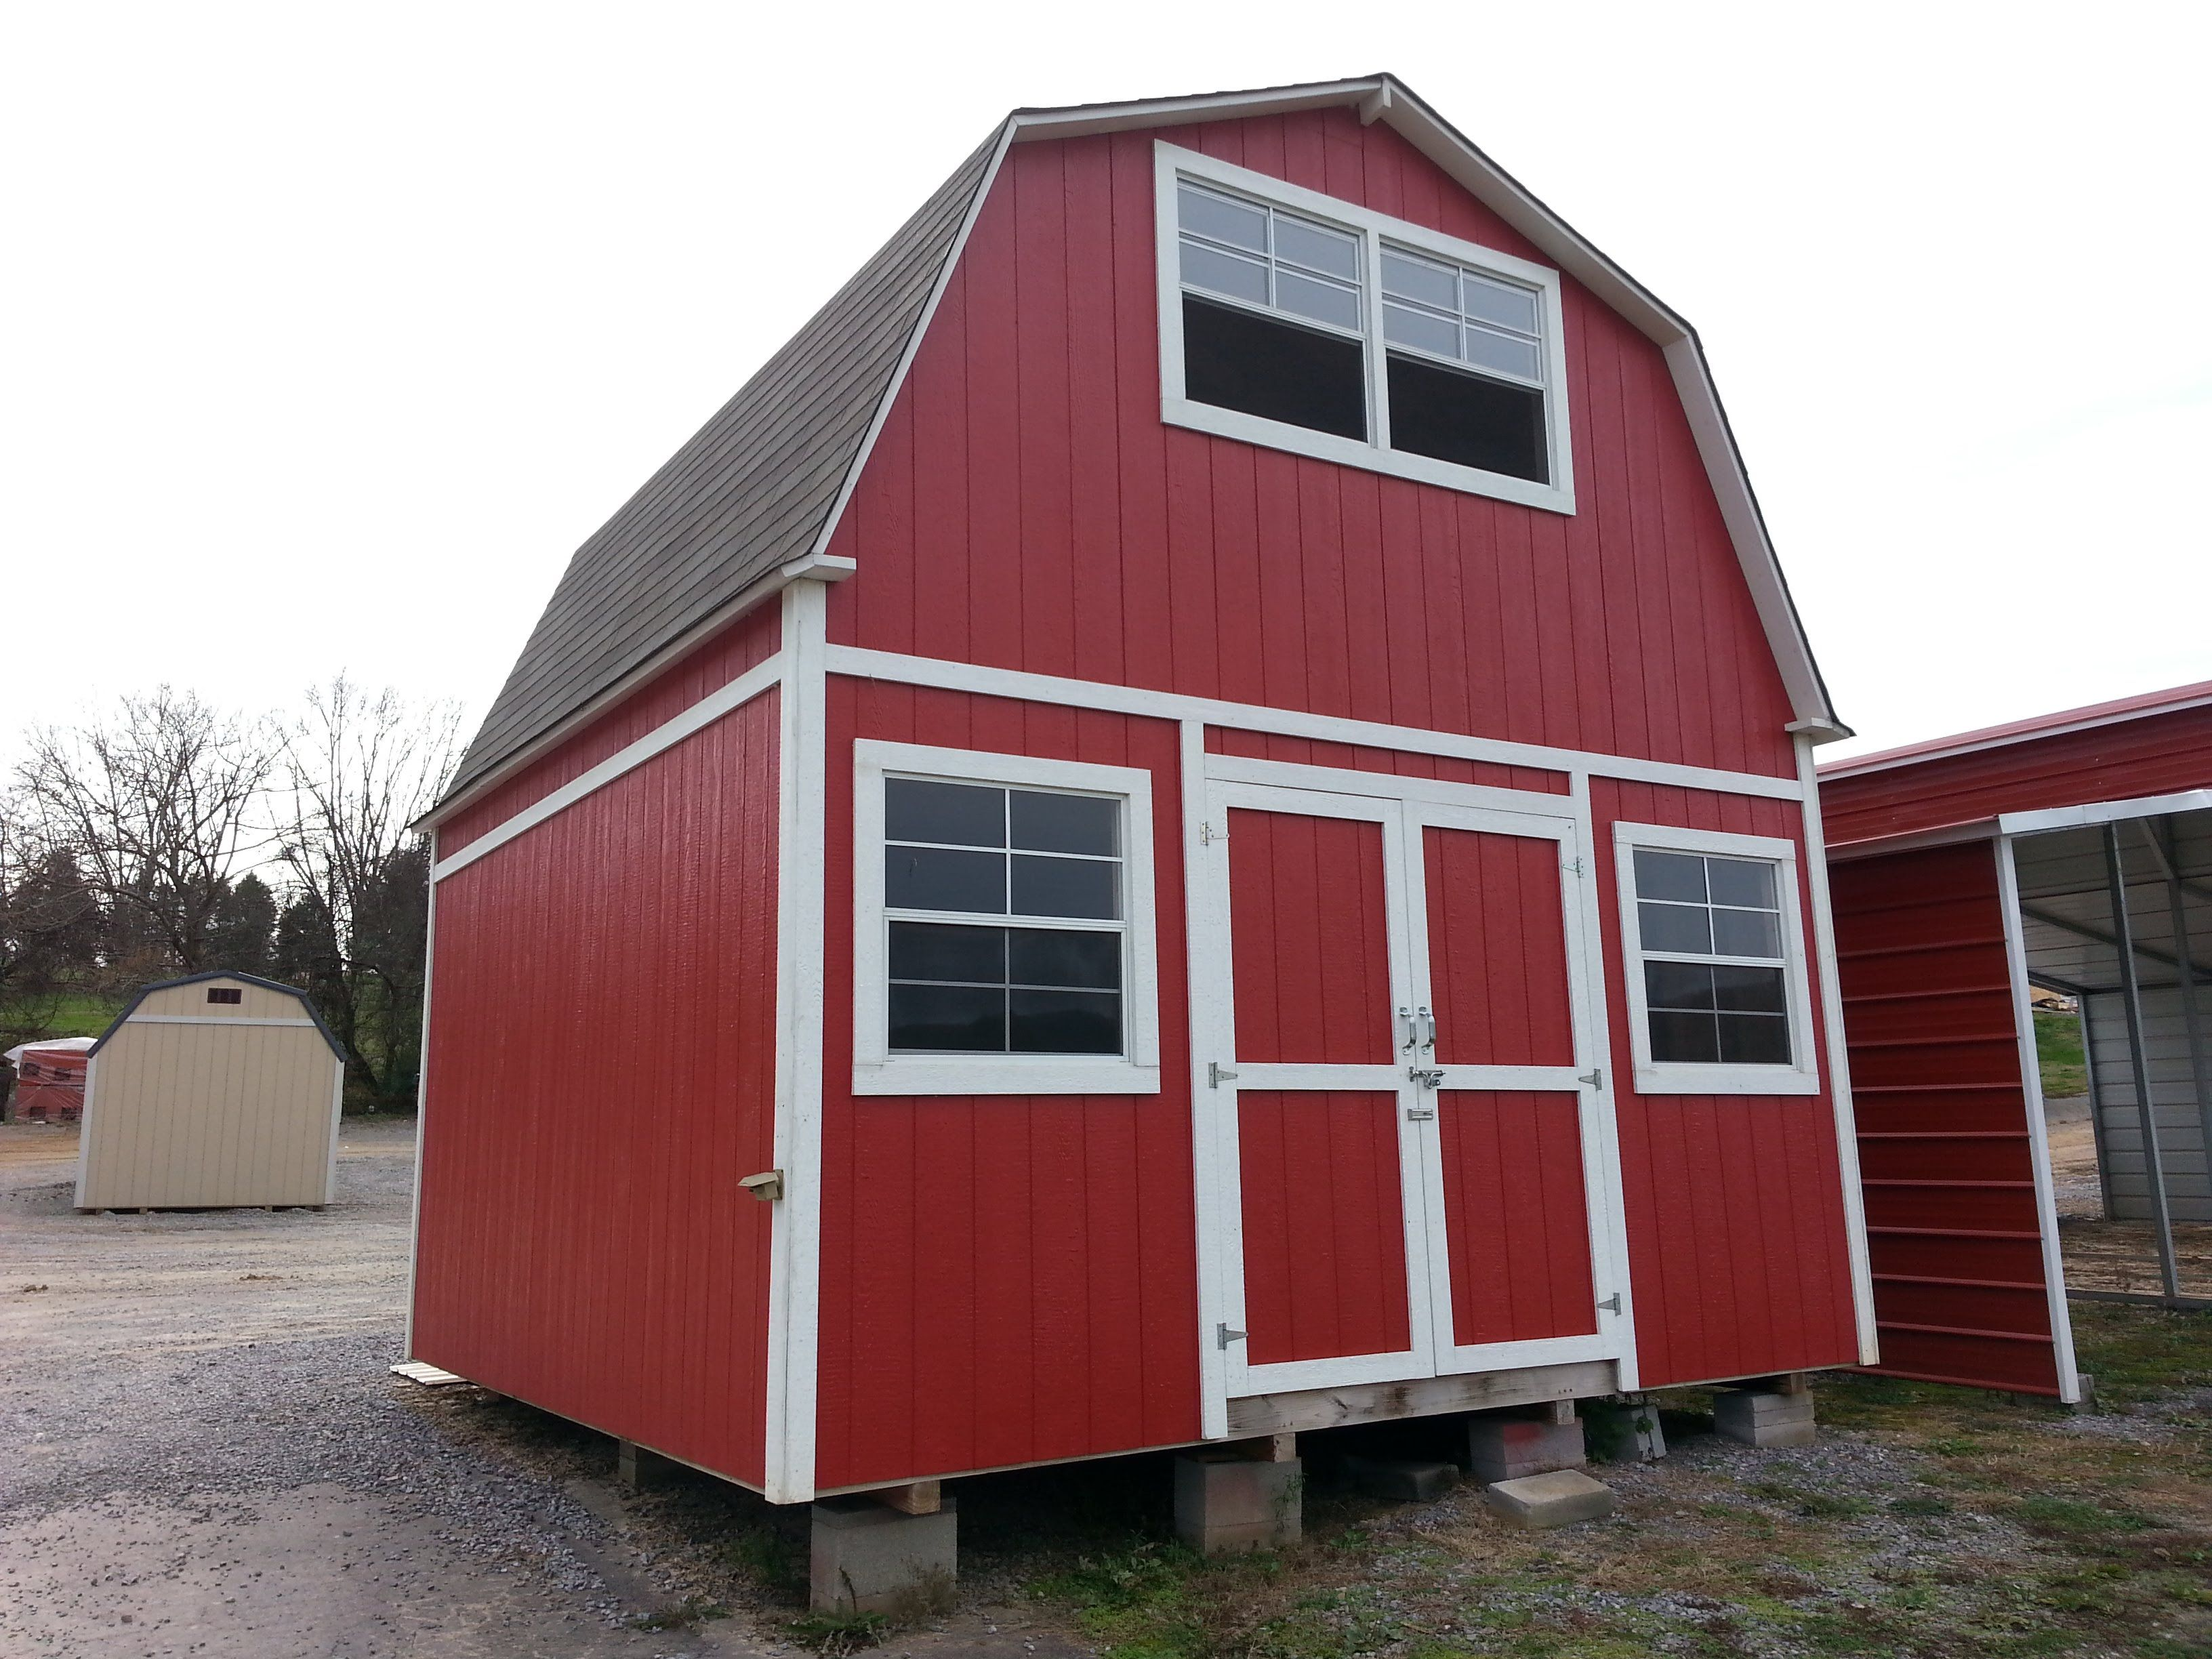 2 Story Tiny House 7 000 Mortgage Free Go Off Grid Cheap